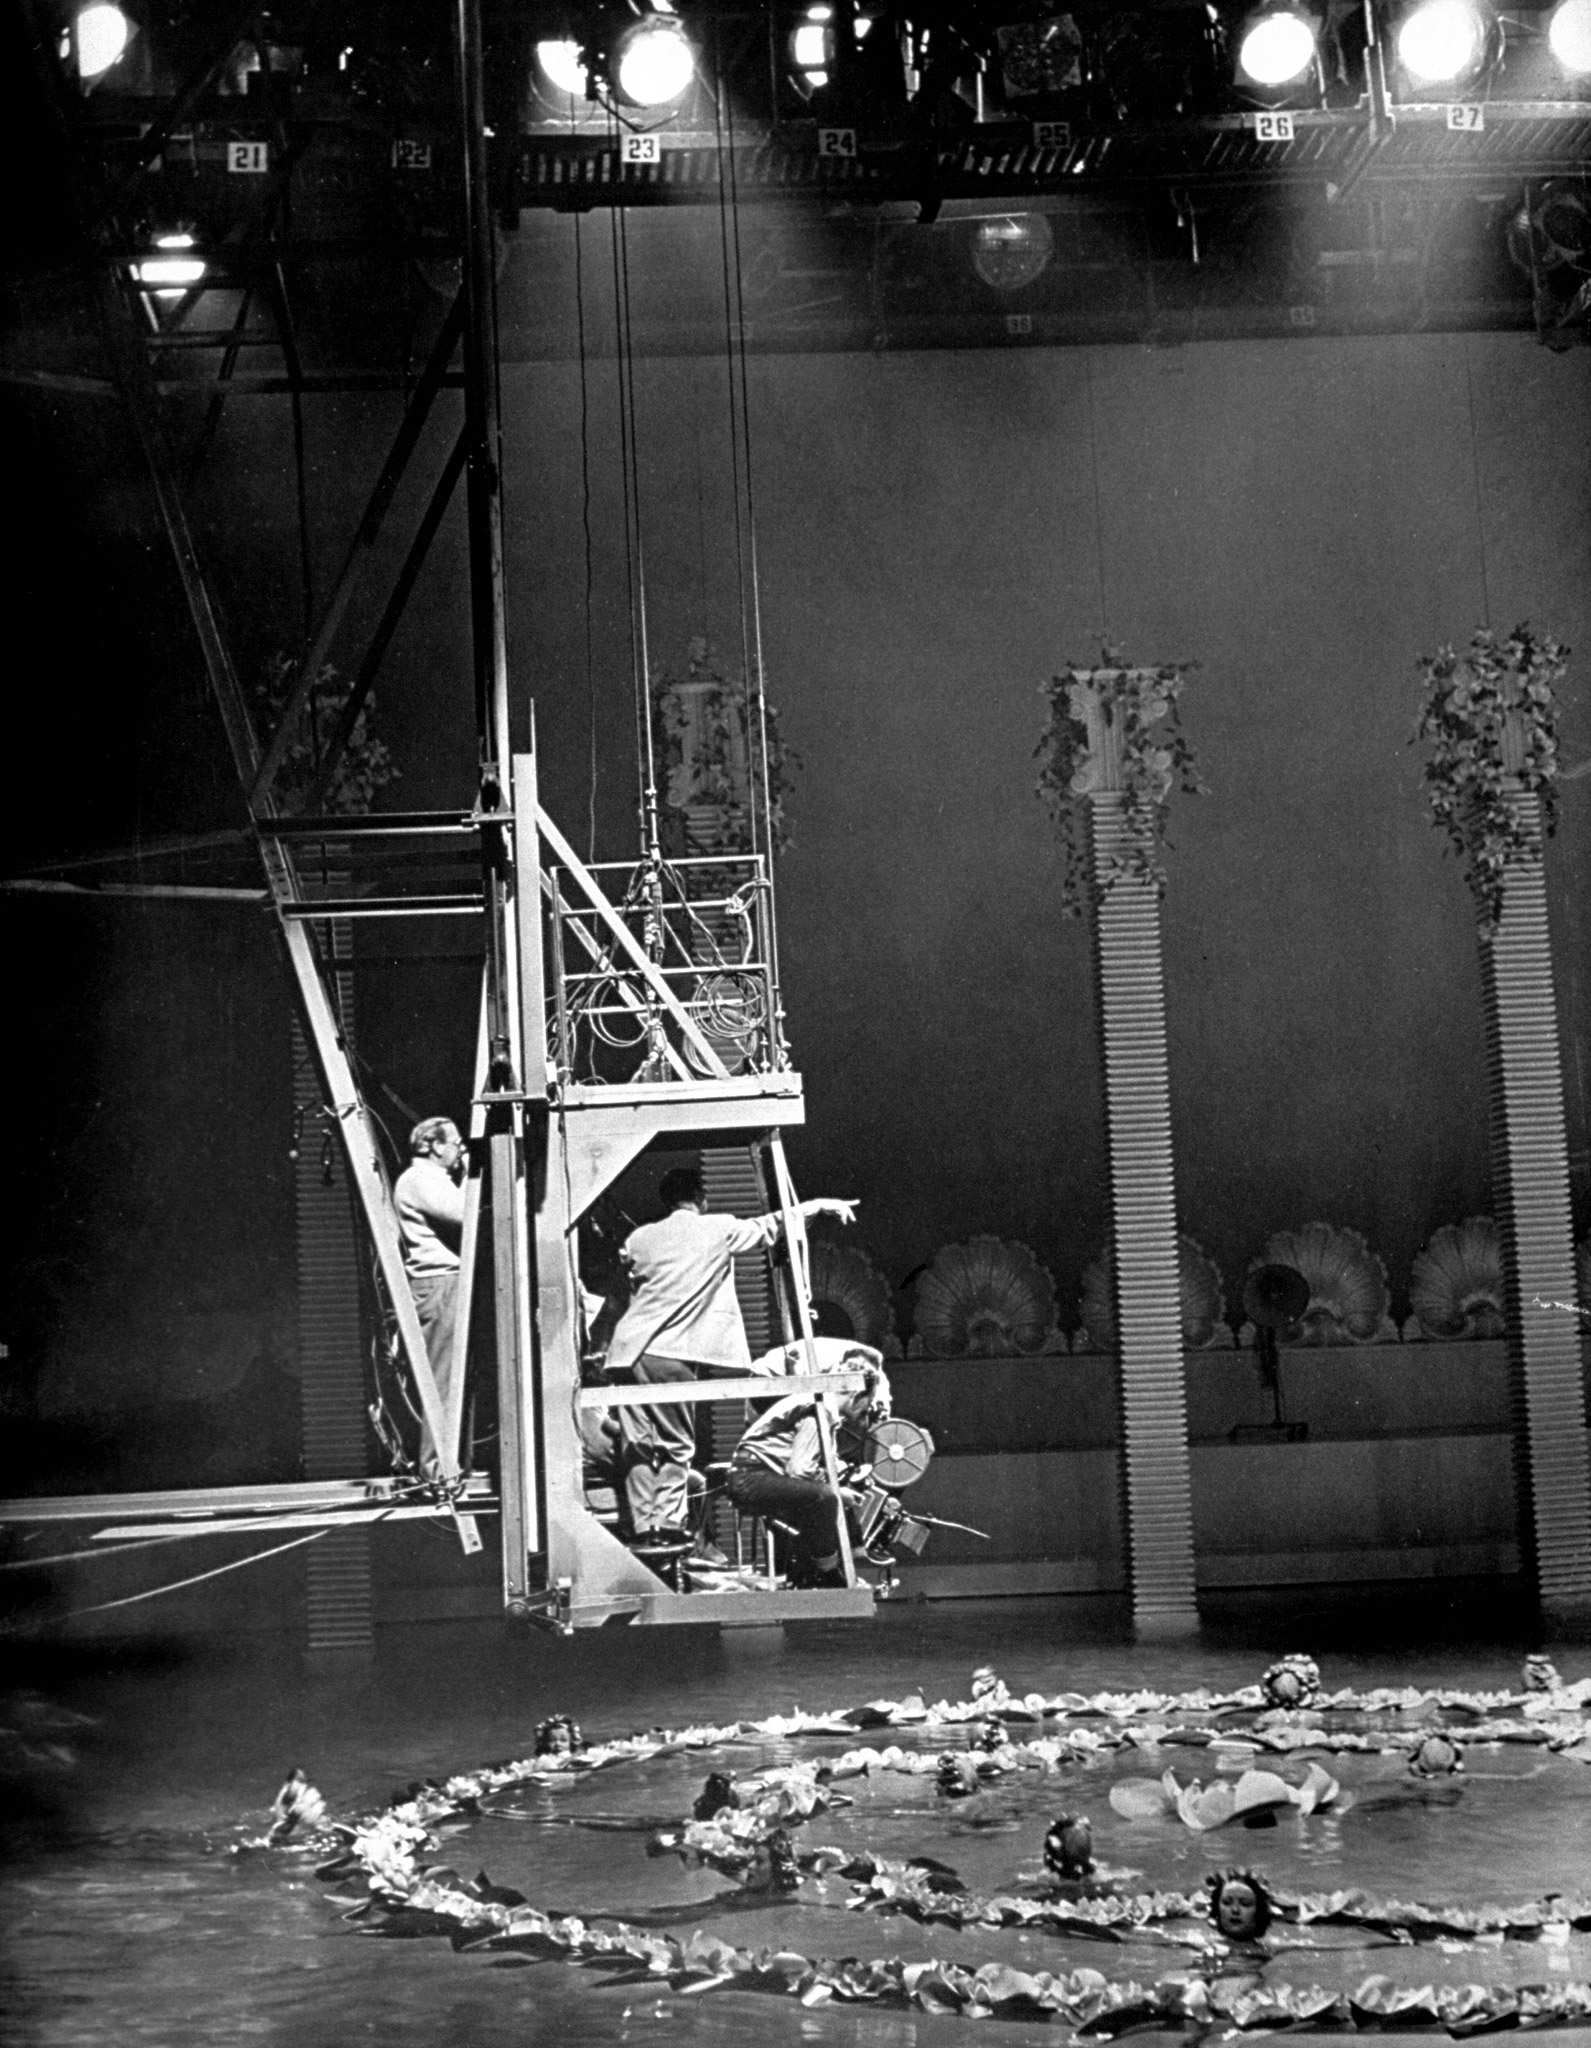 Movie director George Sidney riding on camera crane moving in closer while photographing a circle of swimmers amidst garlands of floating plastic flowers for a scene in the movie musical 'Bathing Beauty' starring Esther Williams in pool at M-G-M studios. 1944